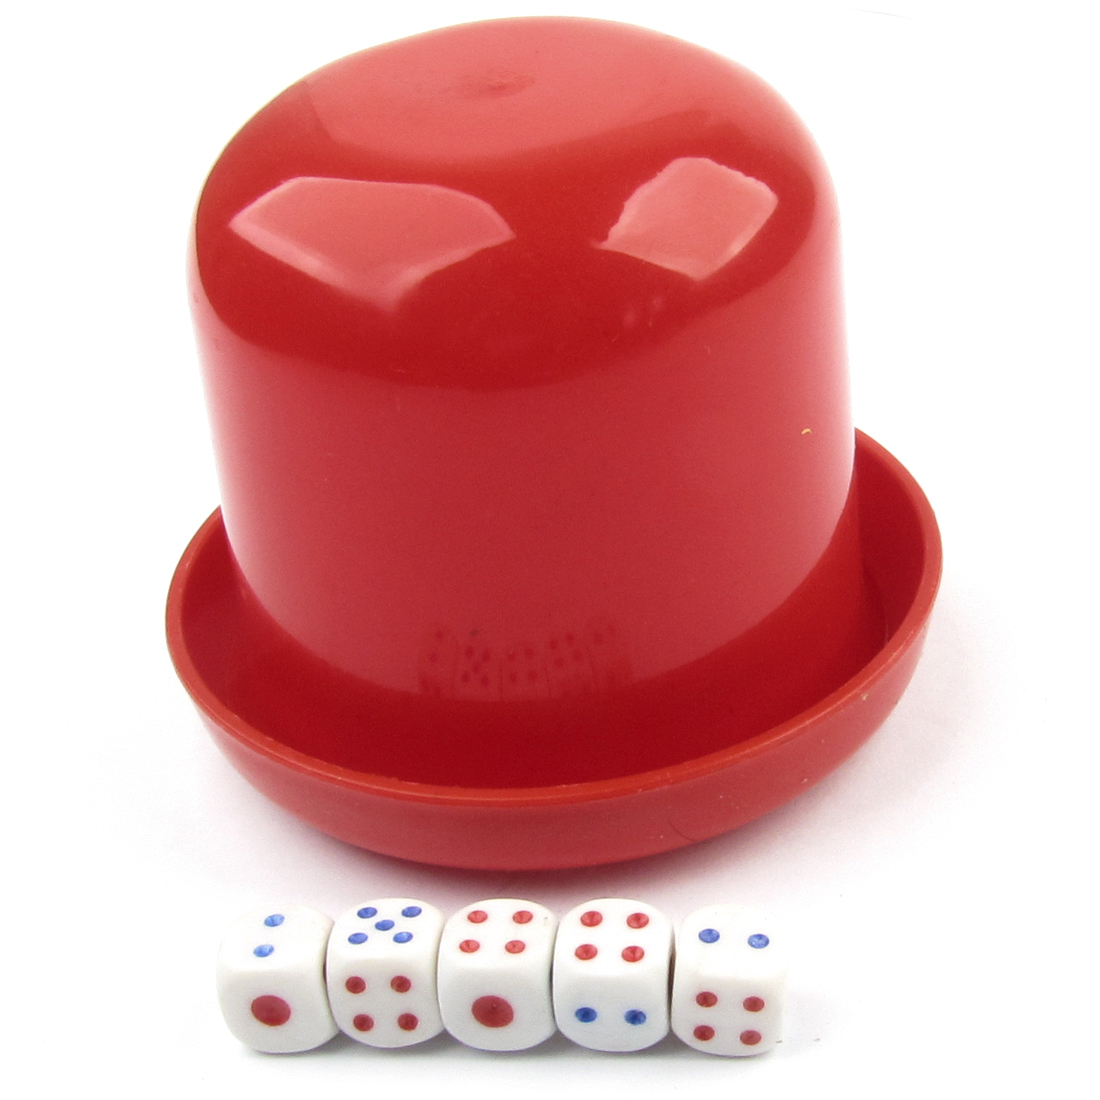 Unique Bargains Game Dice Roller Cup Red w Dices